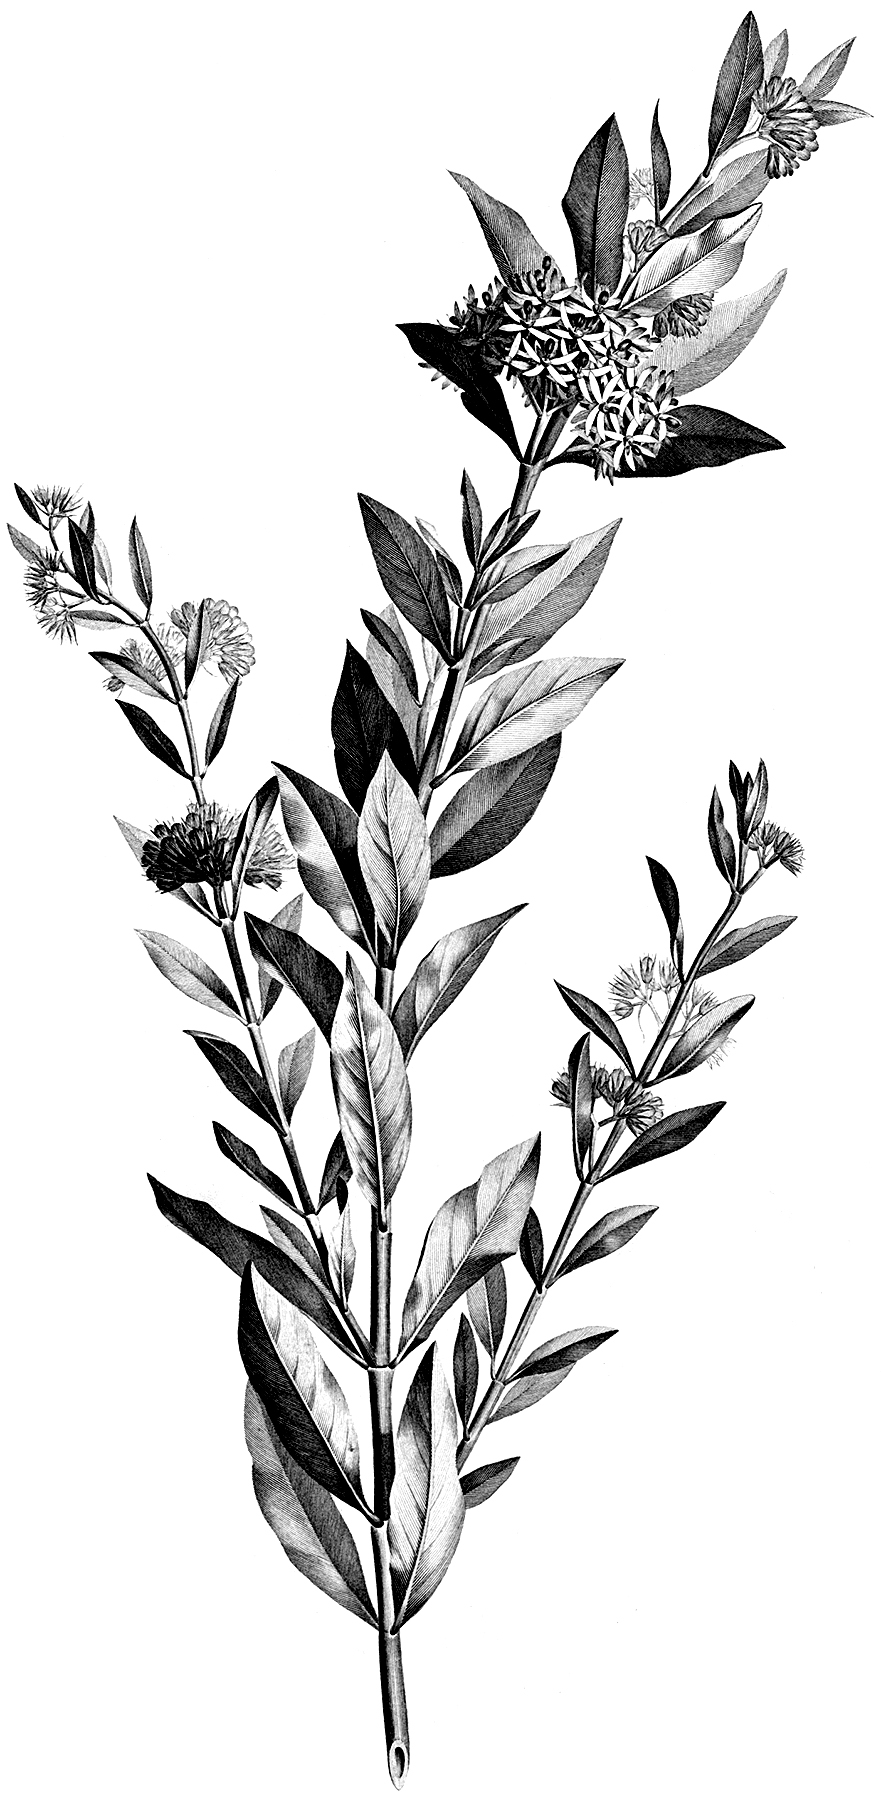 Black and white victorian clipart png black and white download Vintage Black and White Floral Stem Botanical Clip Art! - The ... png black and white download